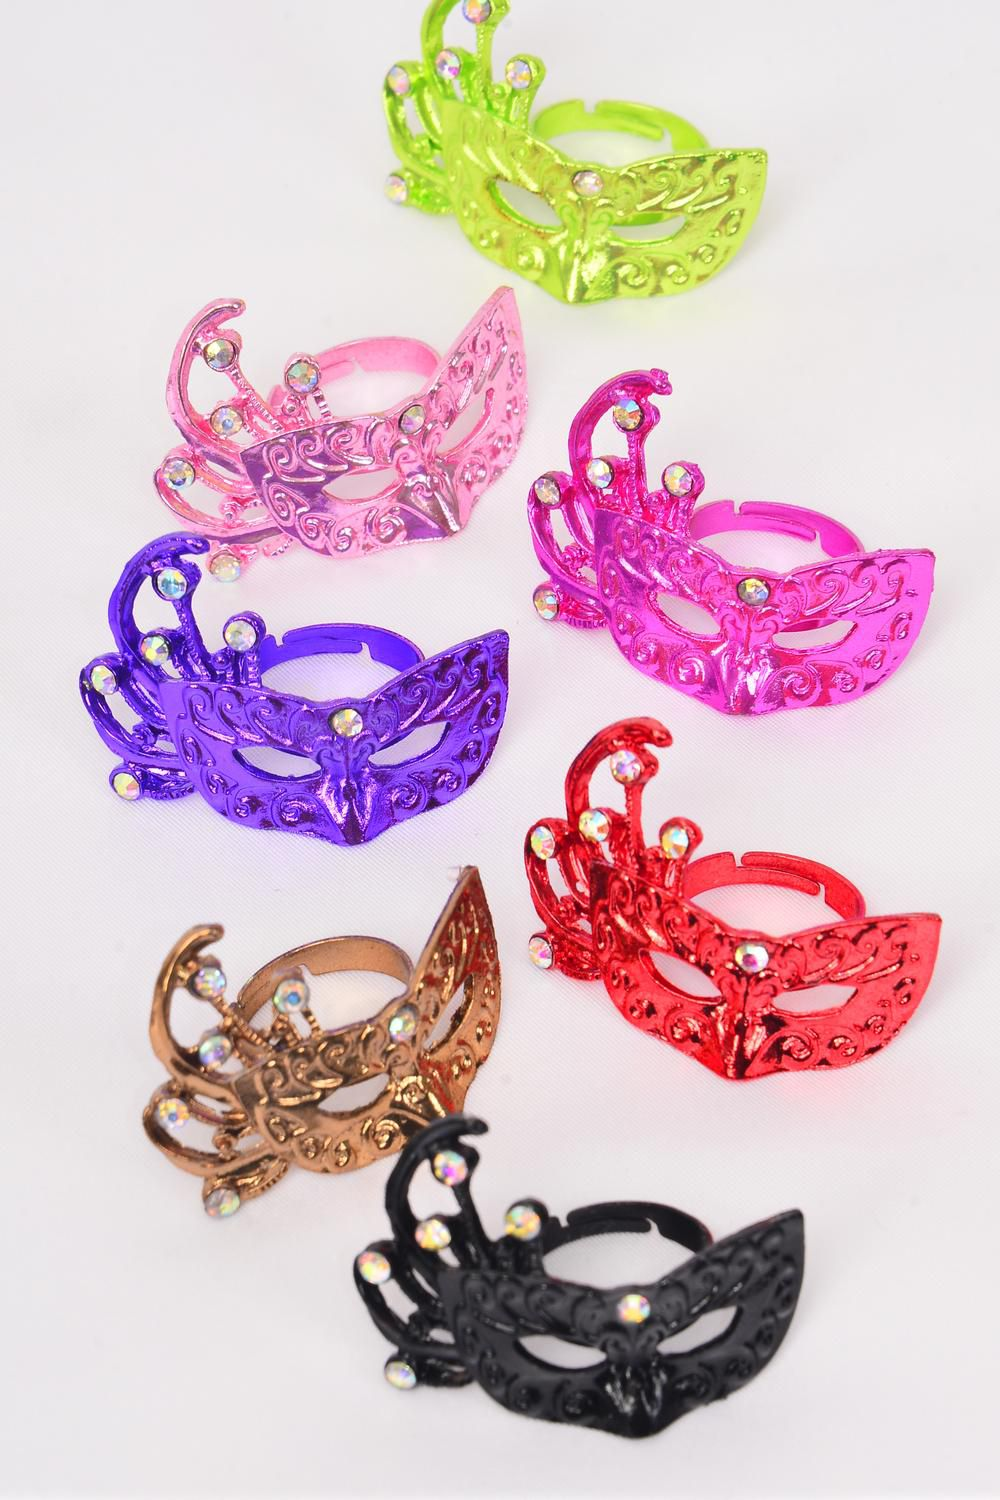 "Rings Mardigras Mask Adjustable/DZ **Adjustable** Face Size-1.5""x 1.25"" Wide, 2 Black,2 Fuchsia,2 Purple,2 Pink,2 Lime,1 Red,1 Brown,7 Color Asst"